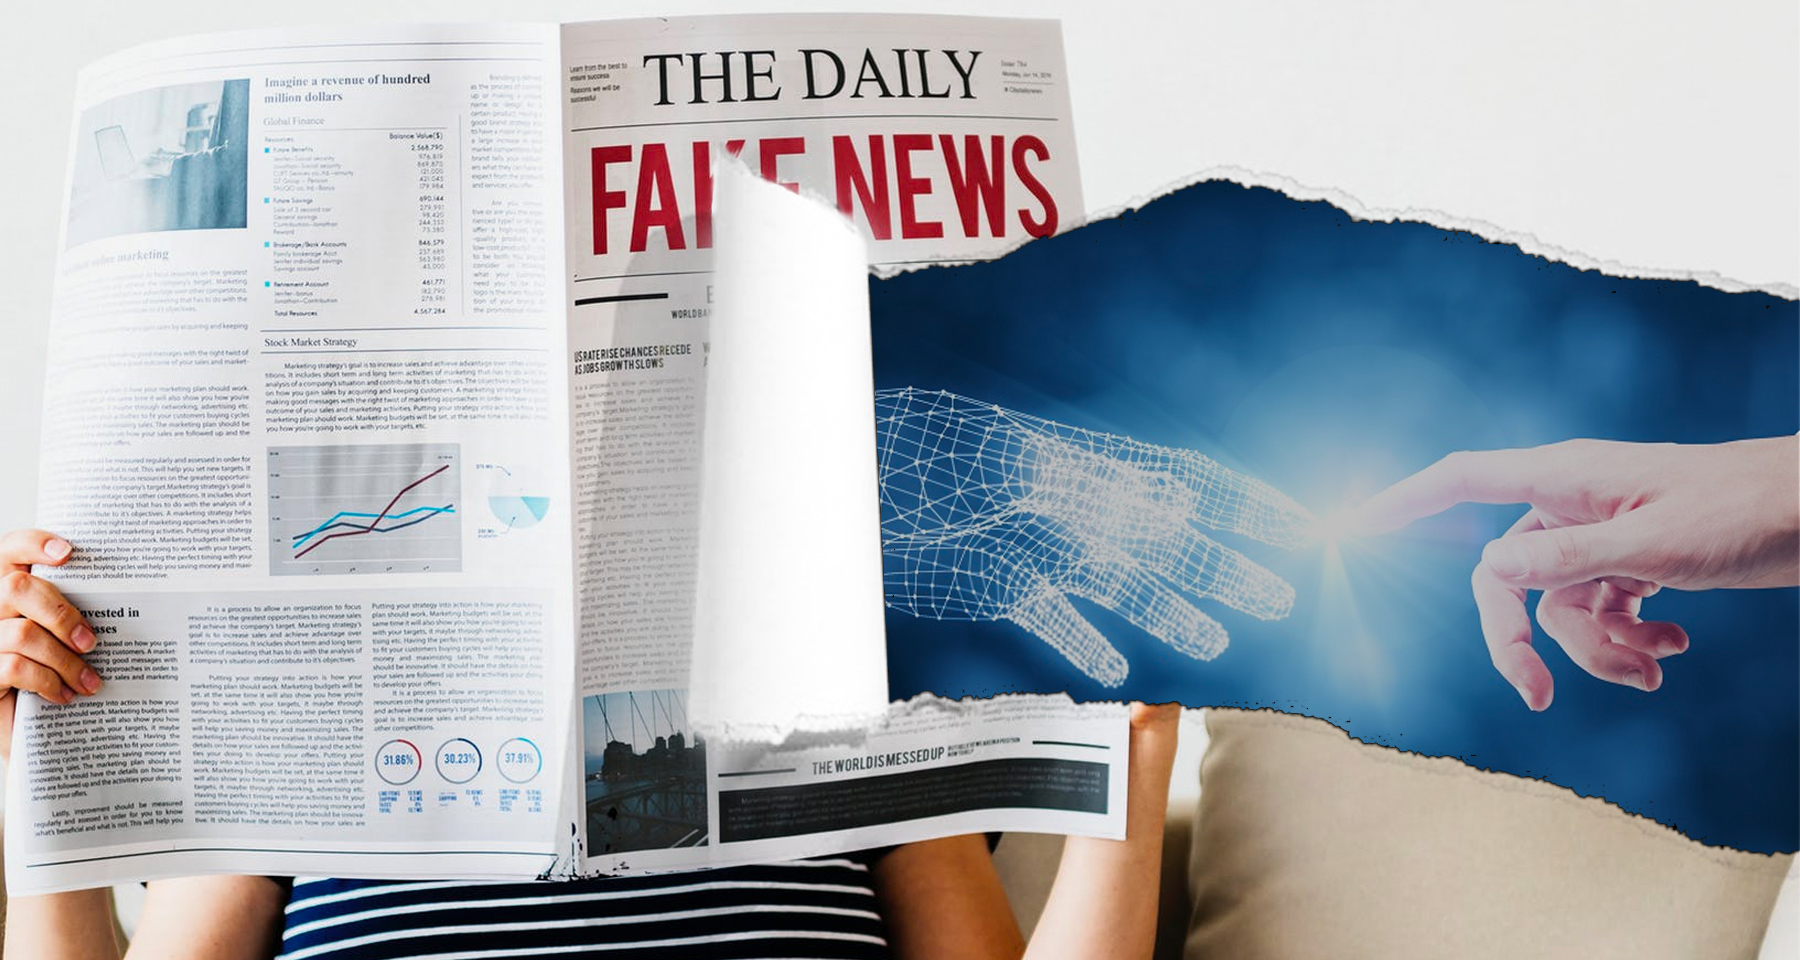 Research: 48% of Canadians consume online news several times daily